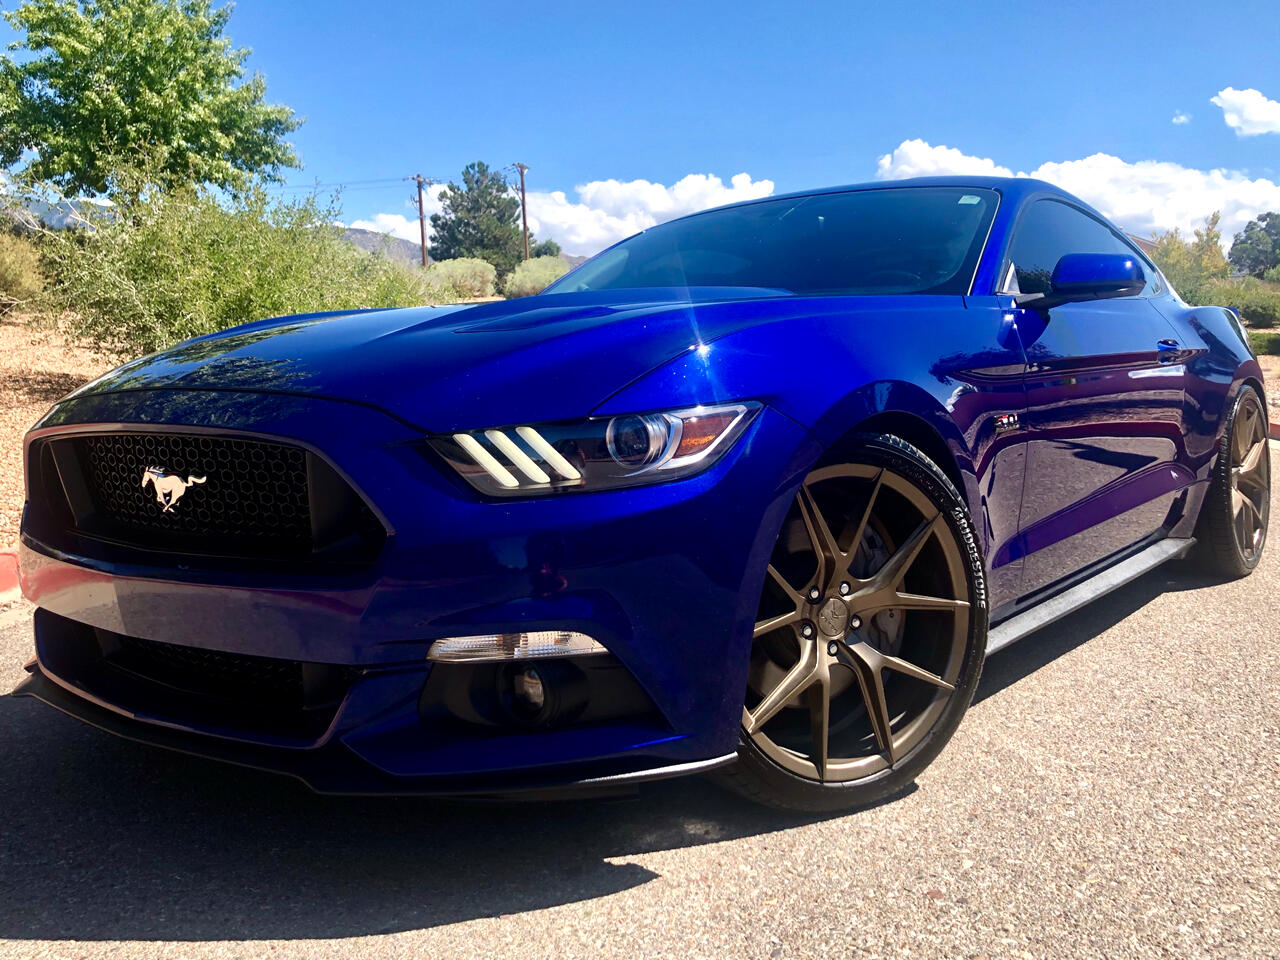 2015 Ford Mustang 2dr Fastback GT 6-Speed Manual